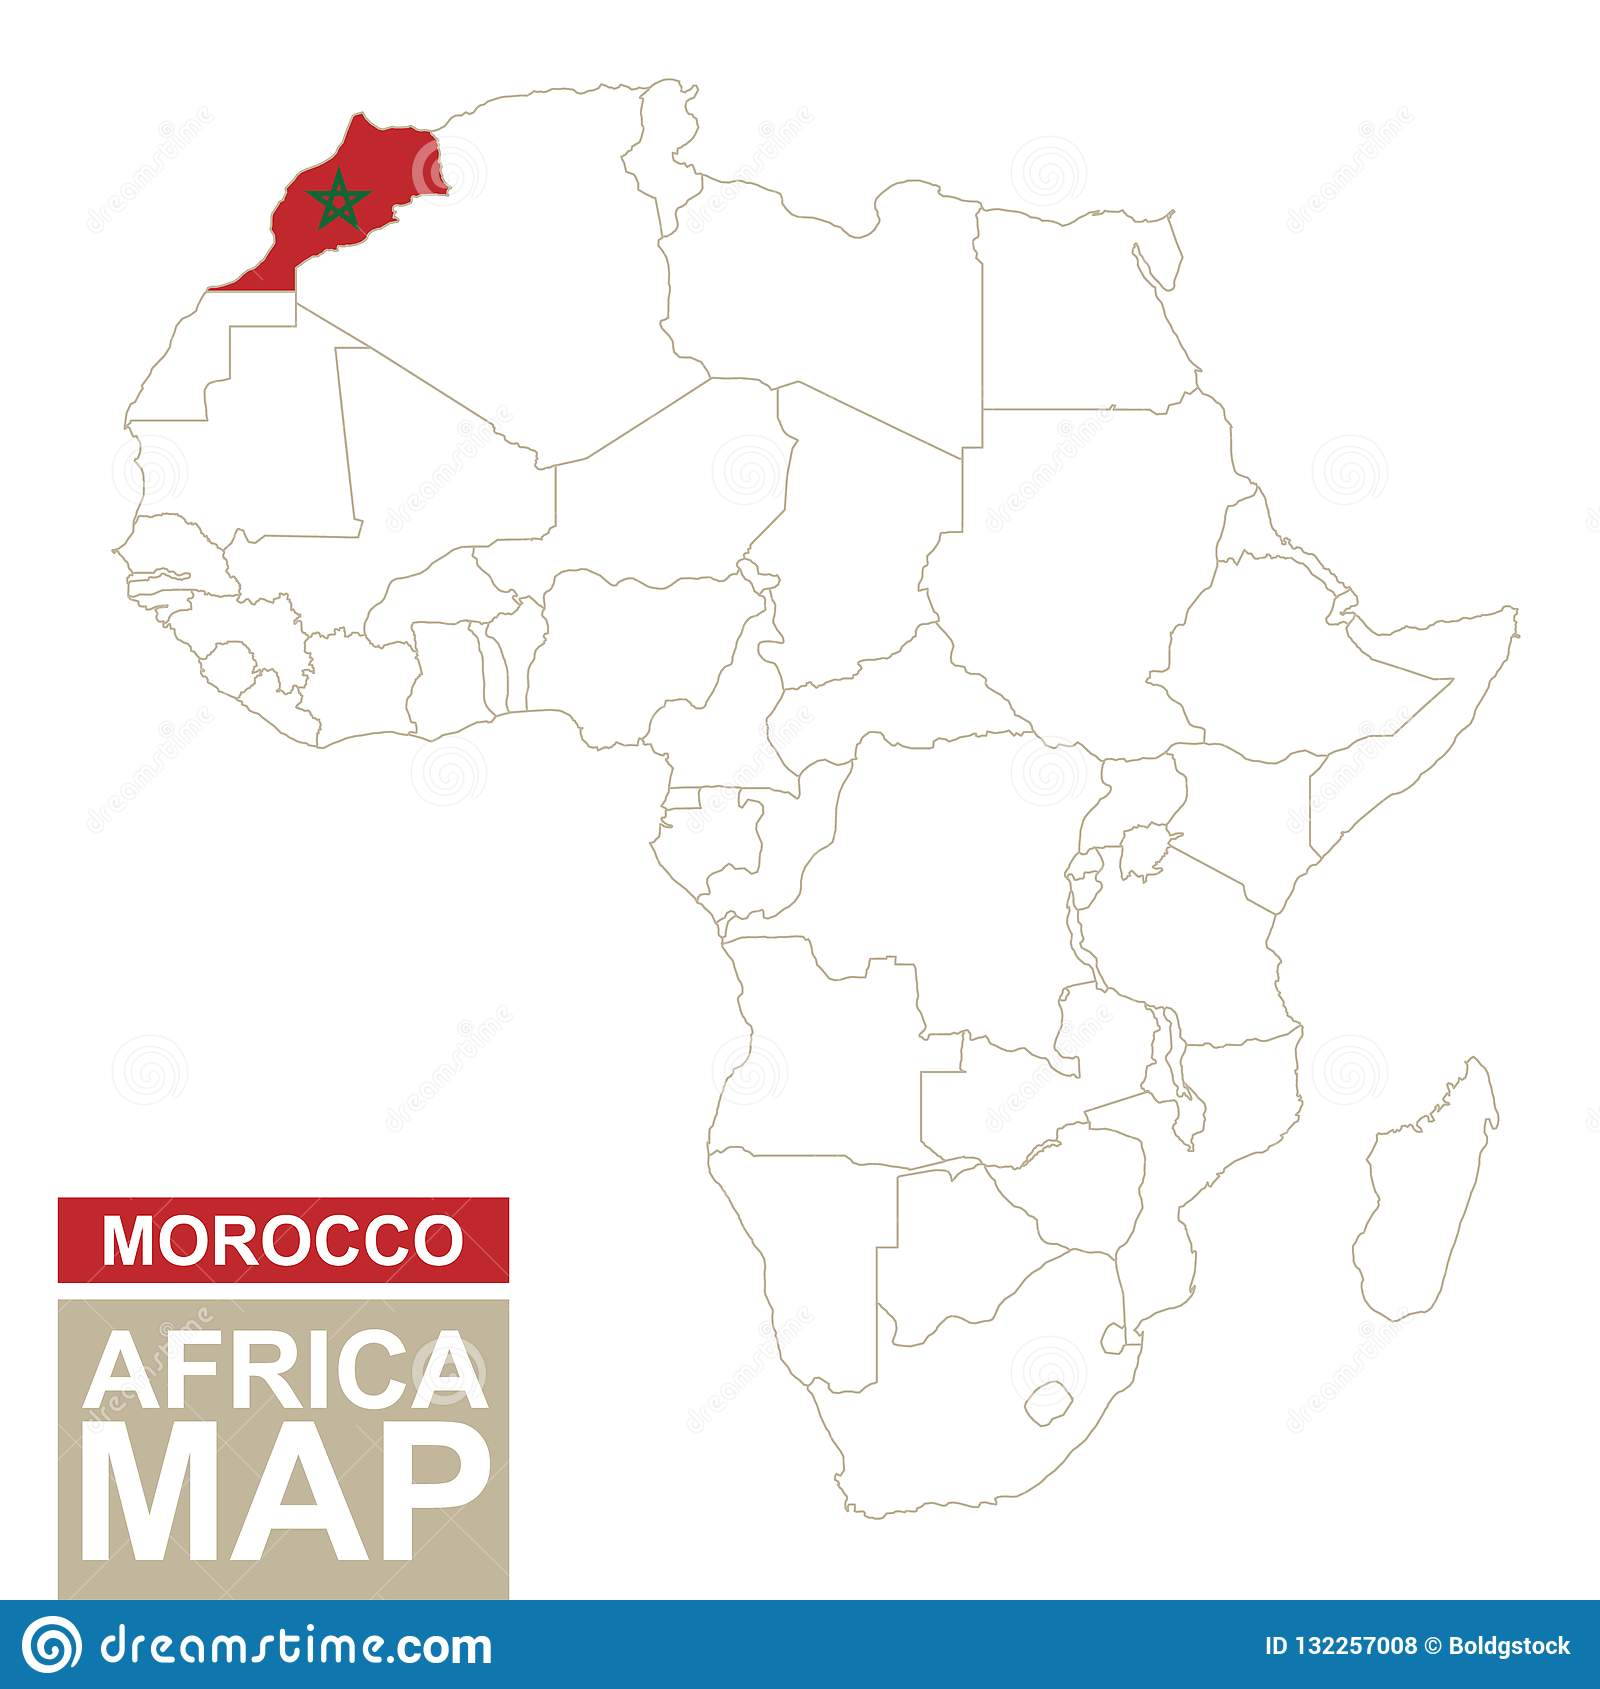 morocco on map of africa Africa Contoured Map With Highlighted Morocco Stock Vector morocco on map of africa